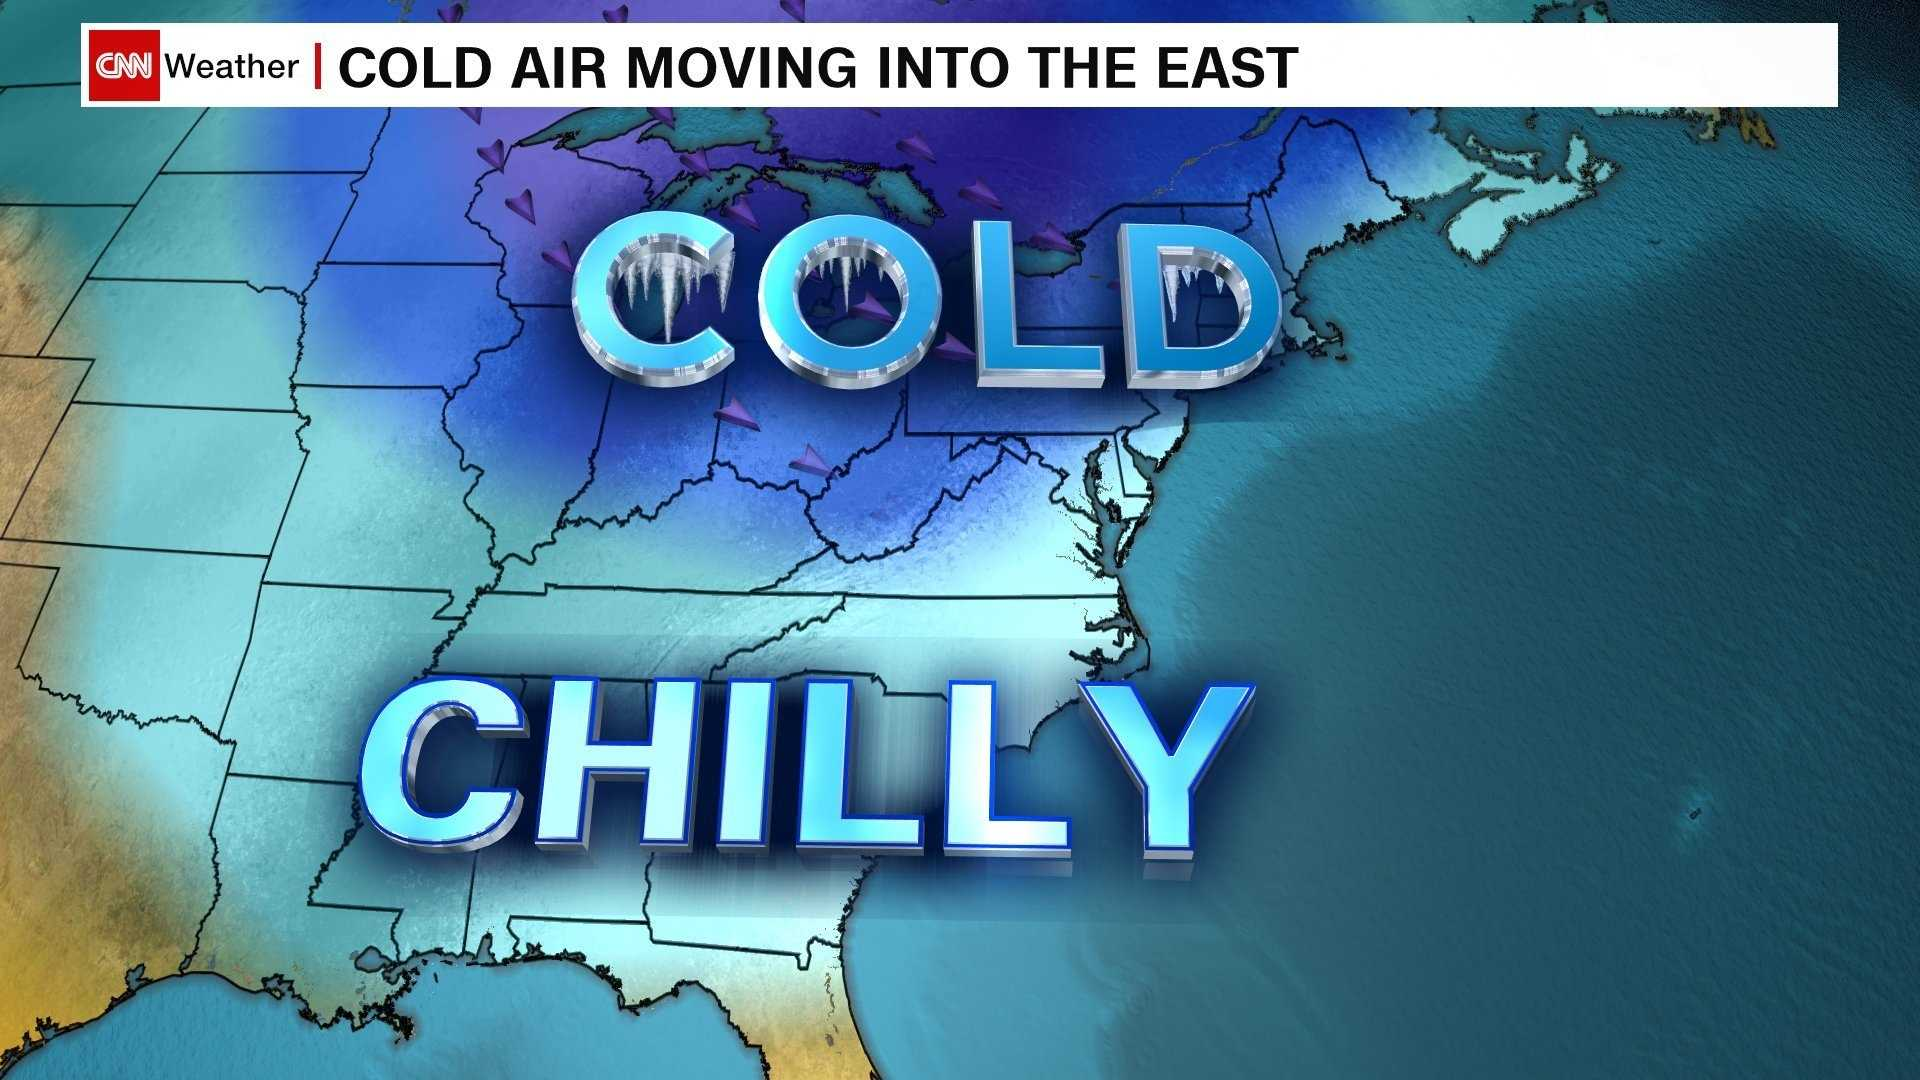 Bundle up and chill out: Record lows possible in Northeast by the weekend | WXII 12